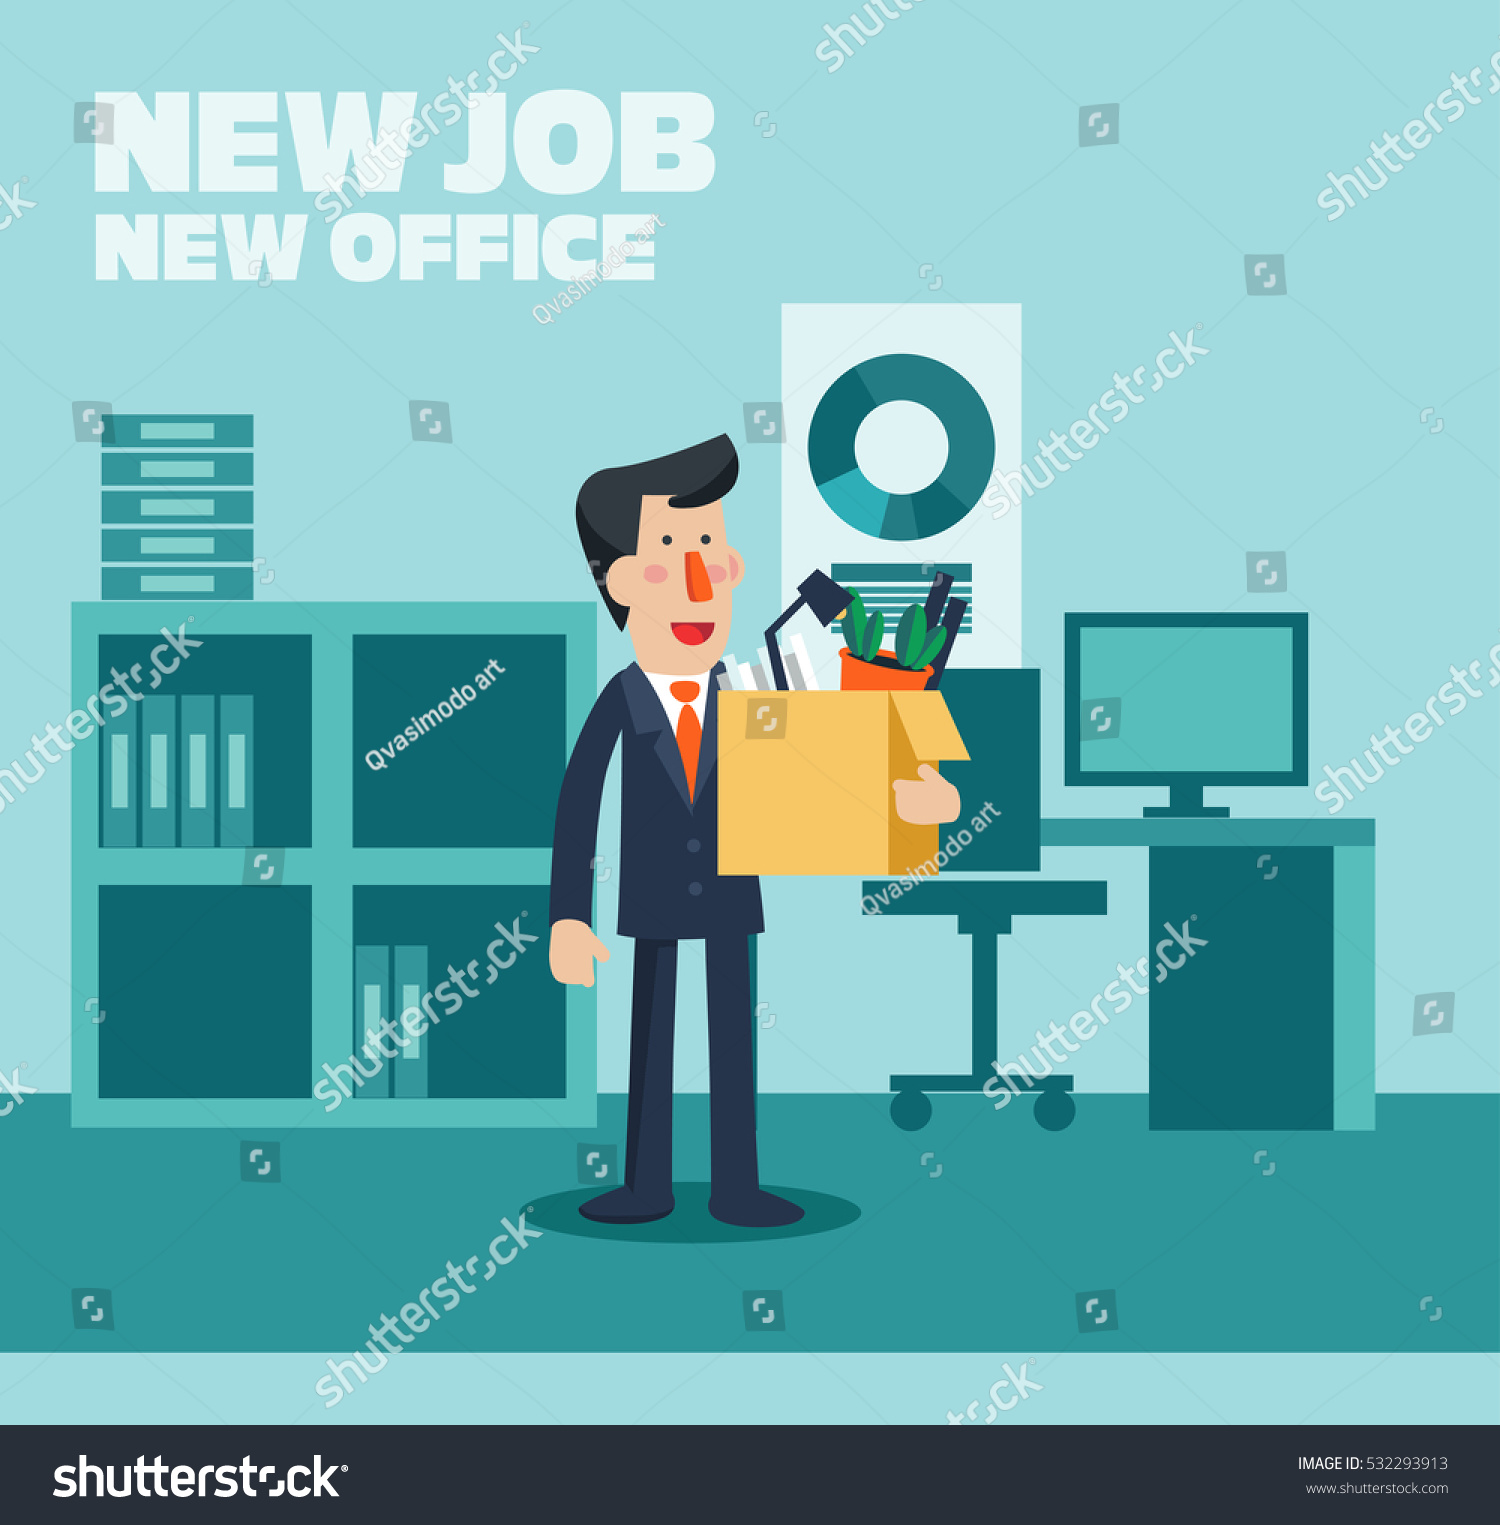 welcome new job vector business concept stock vector  welcome to the new job vector business concept successful smiling young man in the office